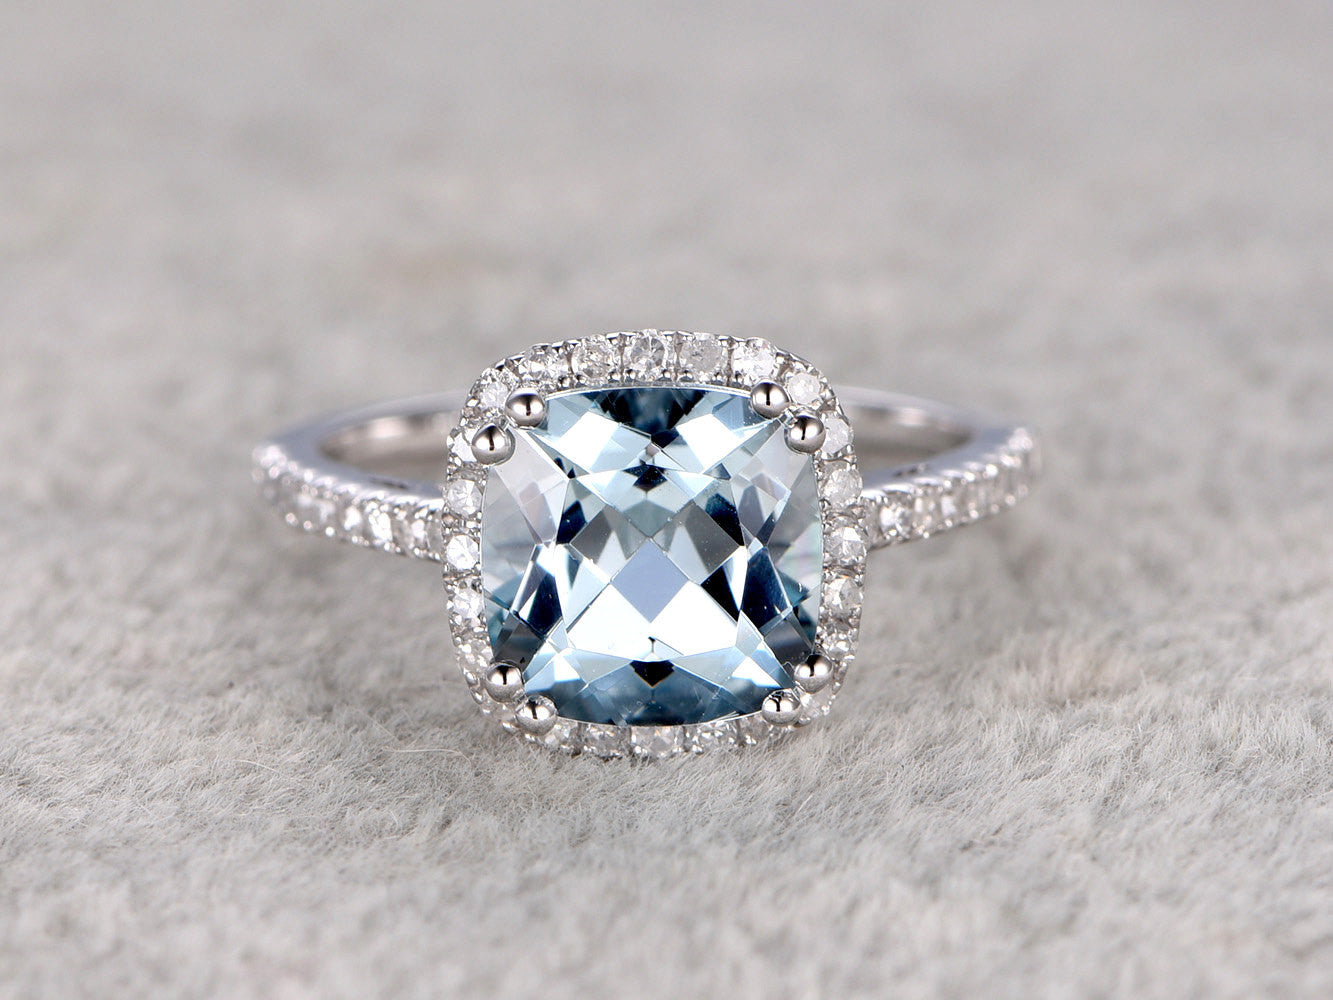 2.3ct Cushion Natural Aquamarine Ring!Diamond Engagement ring White gold,Bridal,Unique 8-Ball prong,Blue Stone Gemstone Promise Ring,wedding